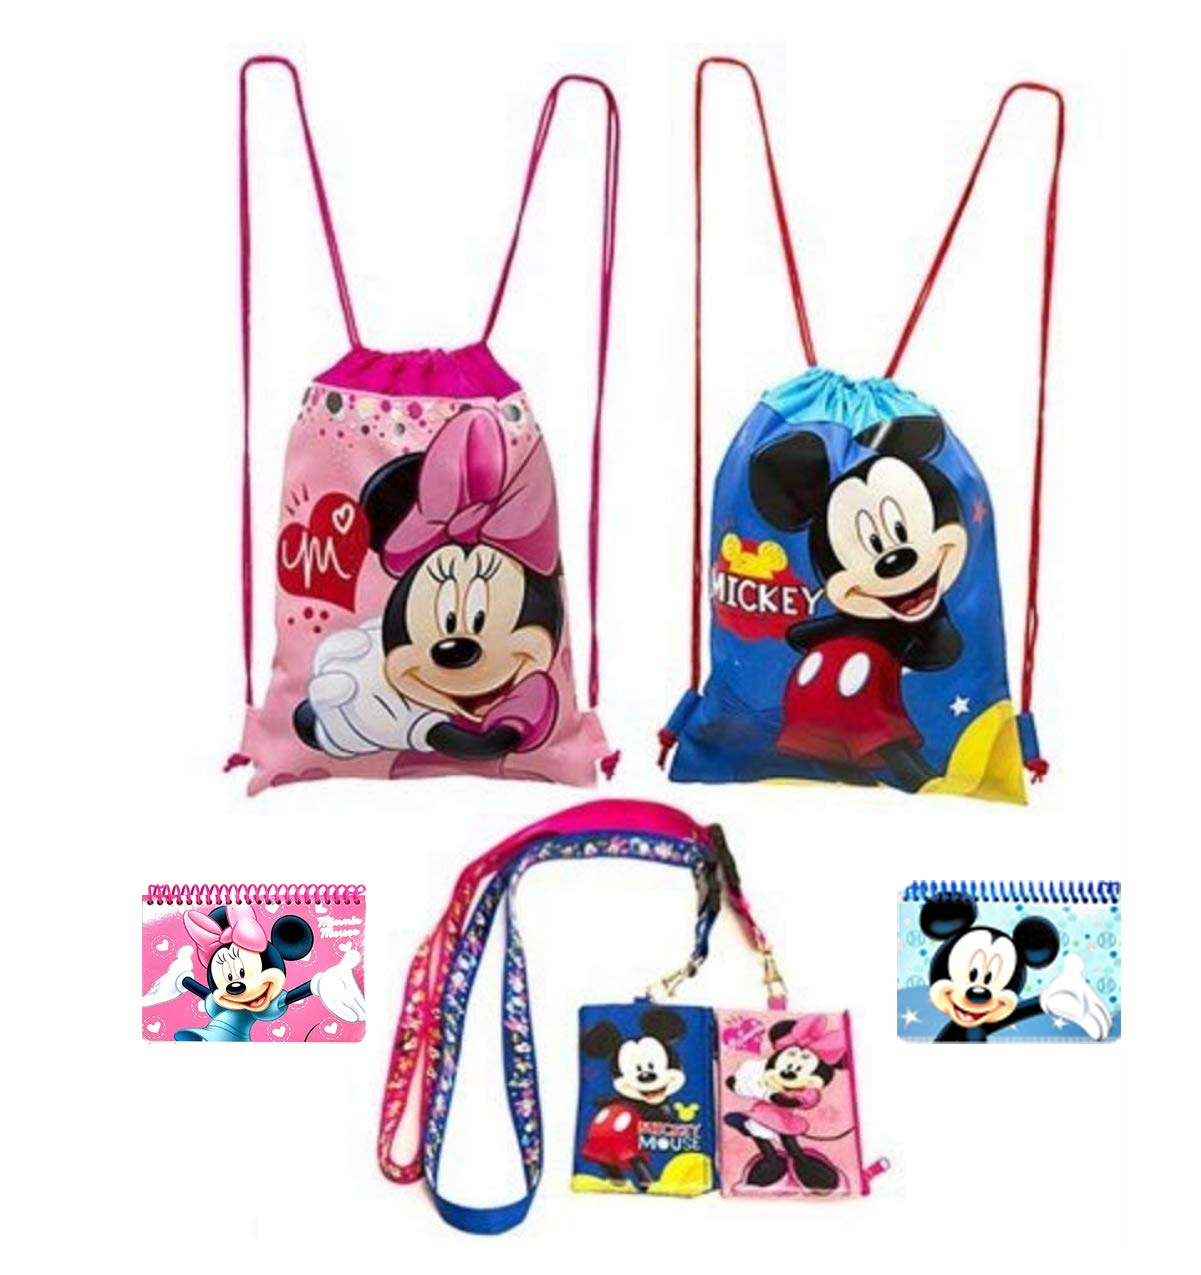 Disney Mickey and Minnie Mouse Drawstring Backpacks Plus Lanyards with Detachable Coin Purse and Autograph Books (Set of 6)